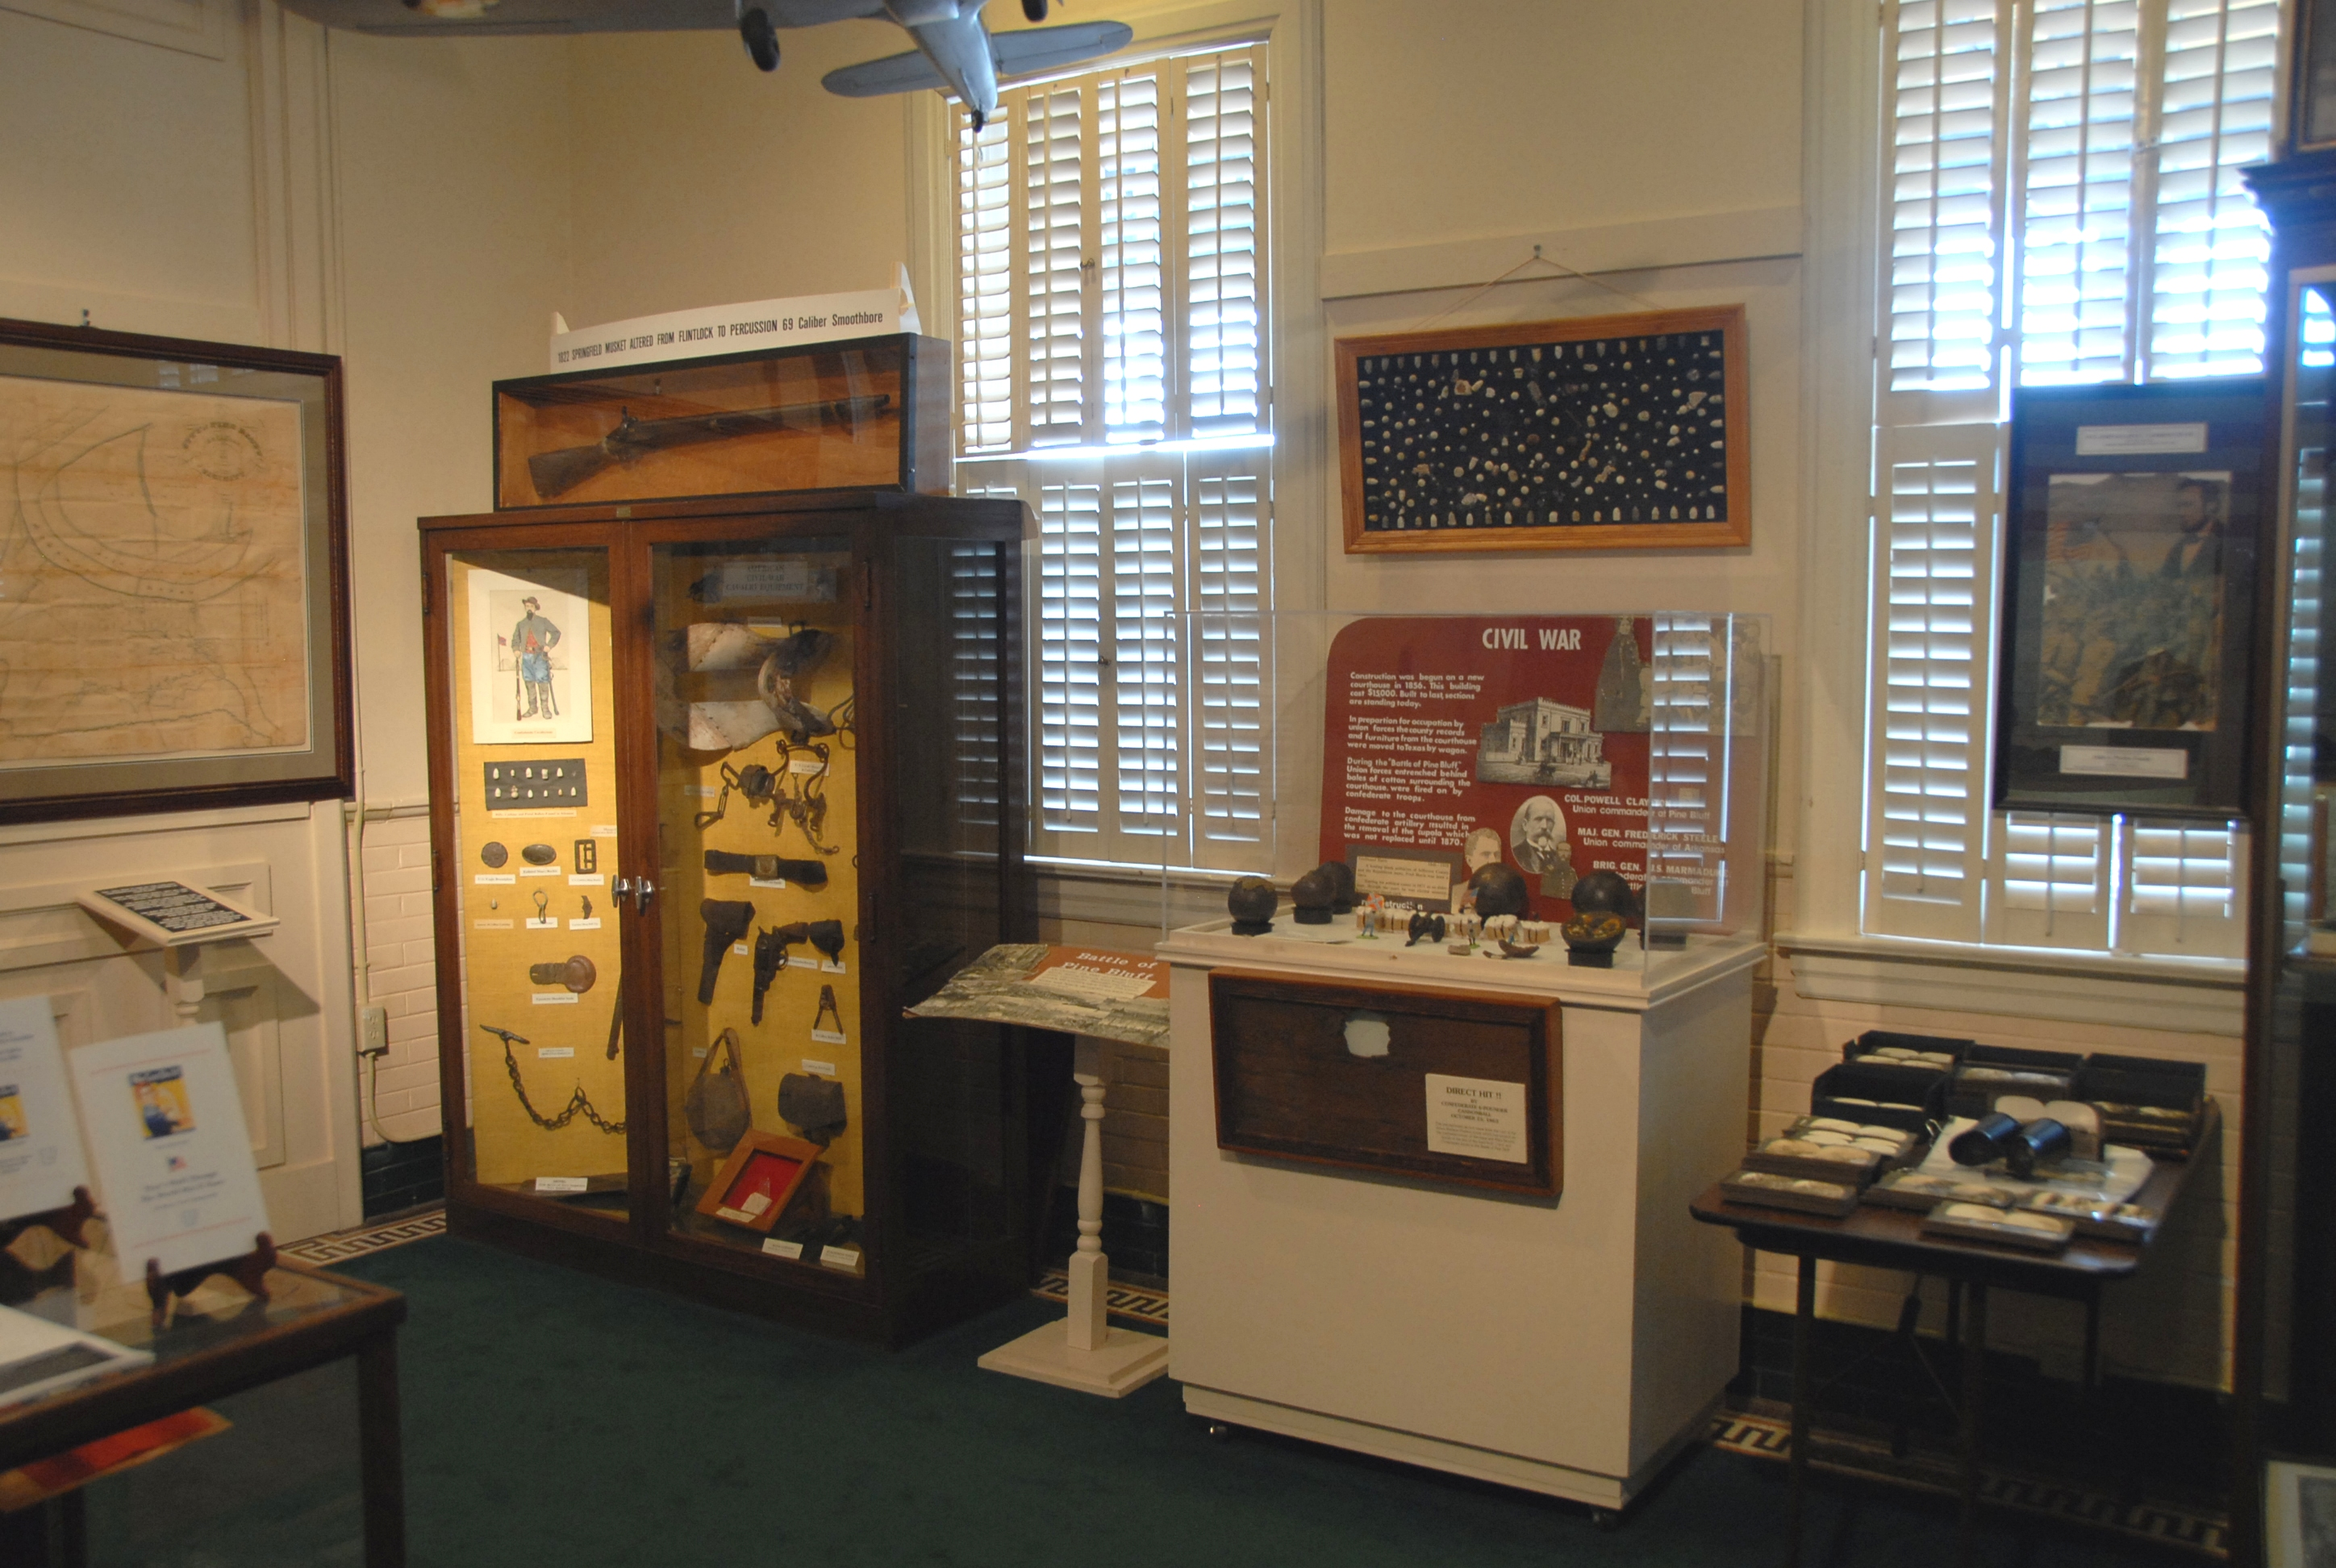 The museum is located in a historic rail depot that was completed in 1906.